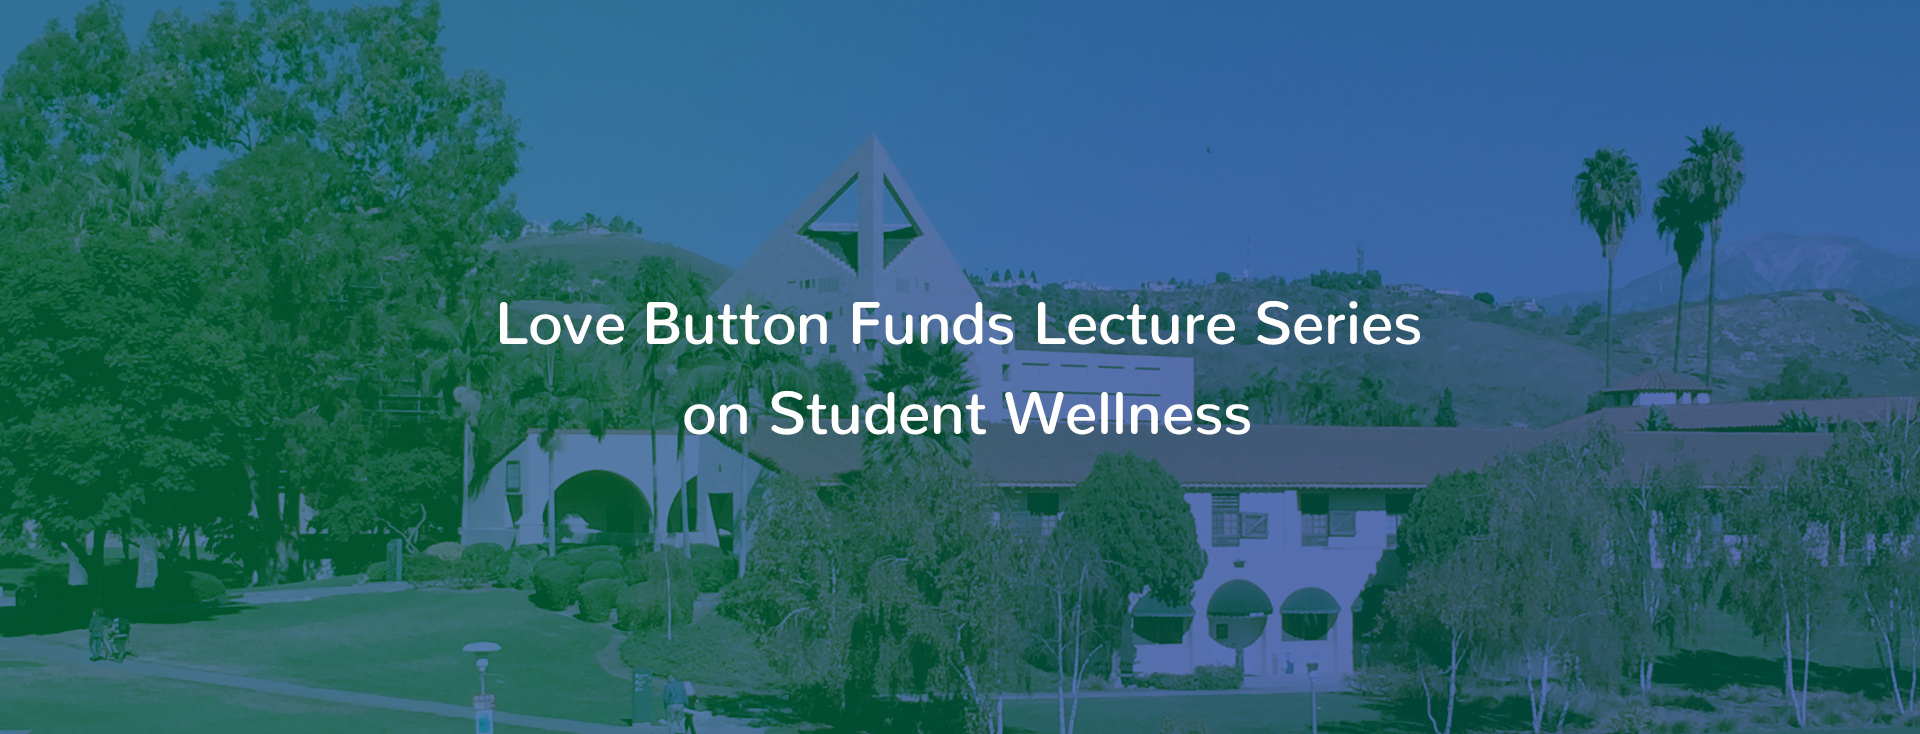 Love Button Funds Lecture Series